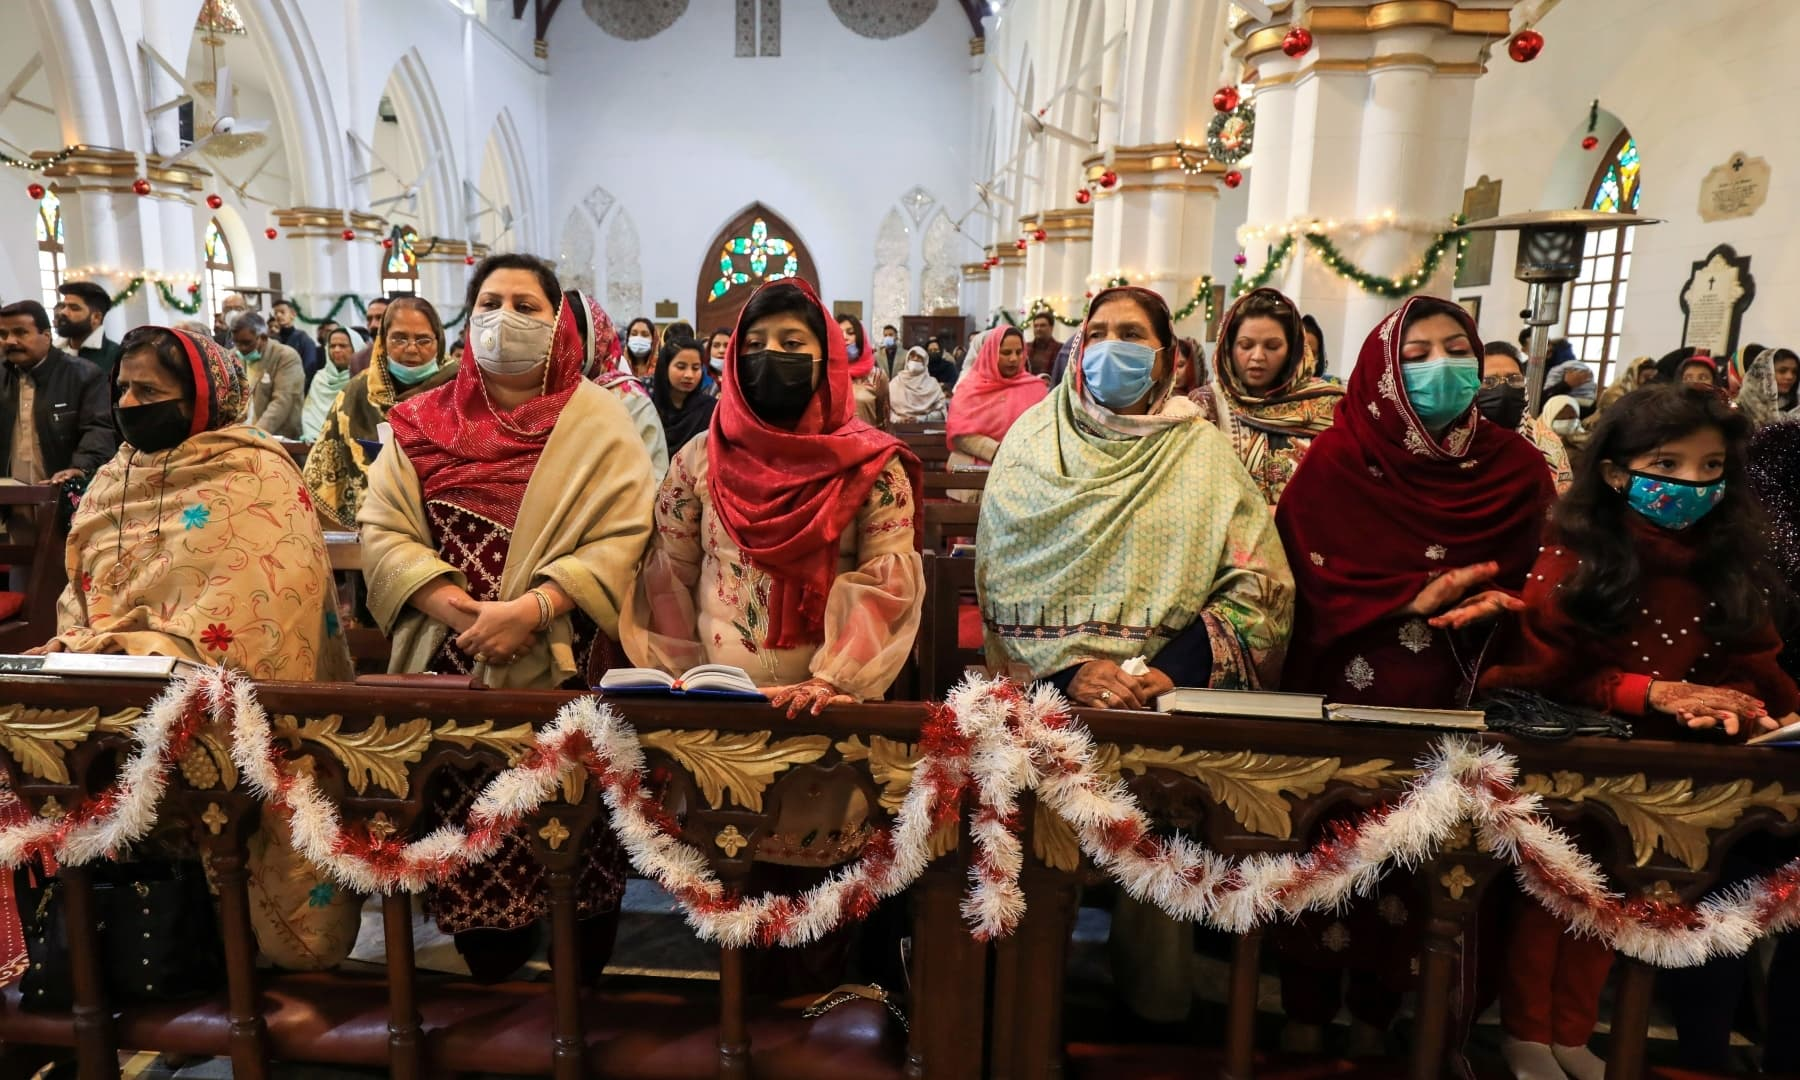 People wearing protective masks attend a Christmas service at St. John's Cathedral in Peshawar, December 25, 2020. — Reuters